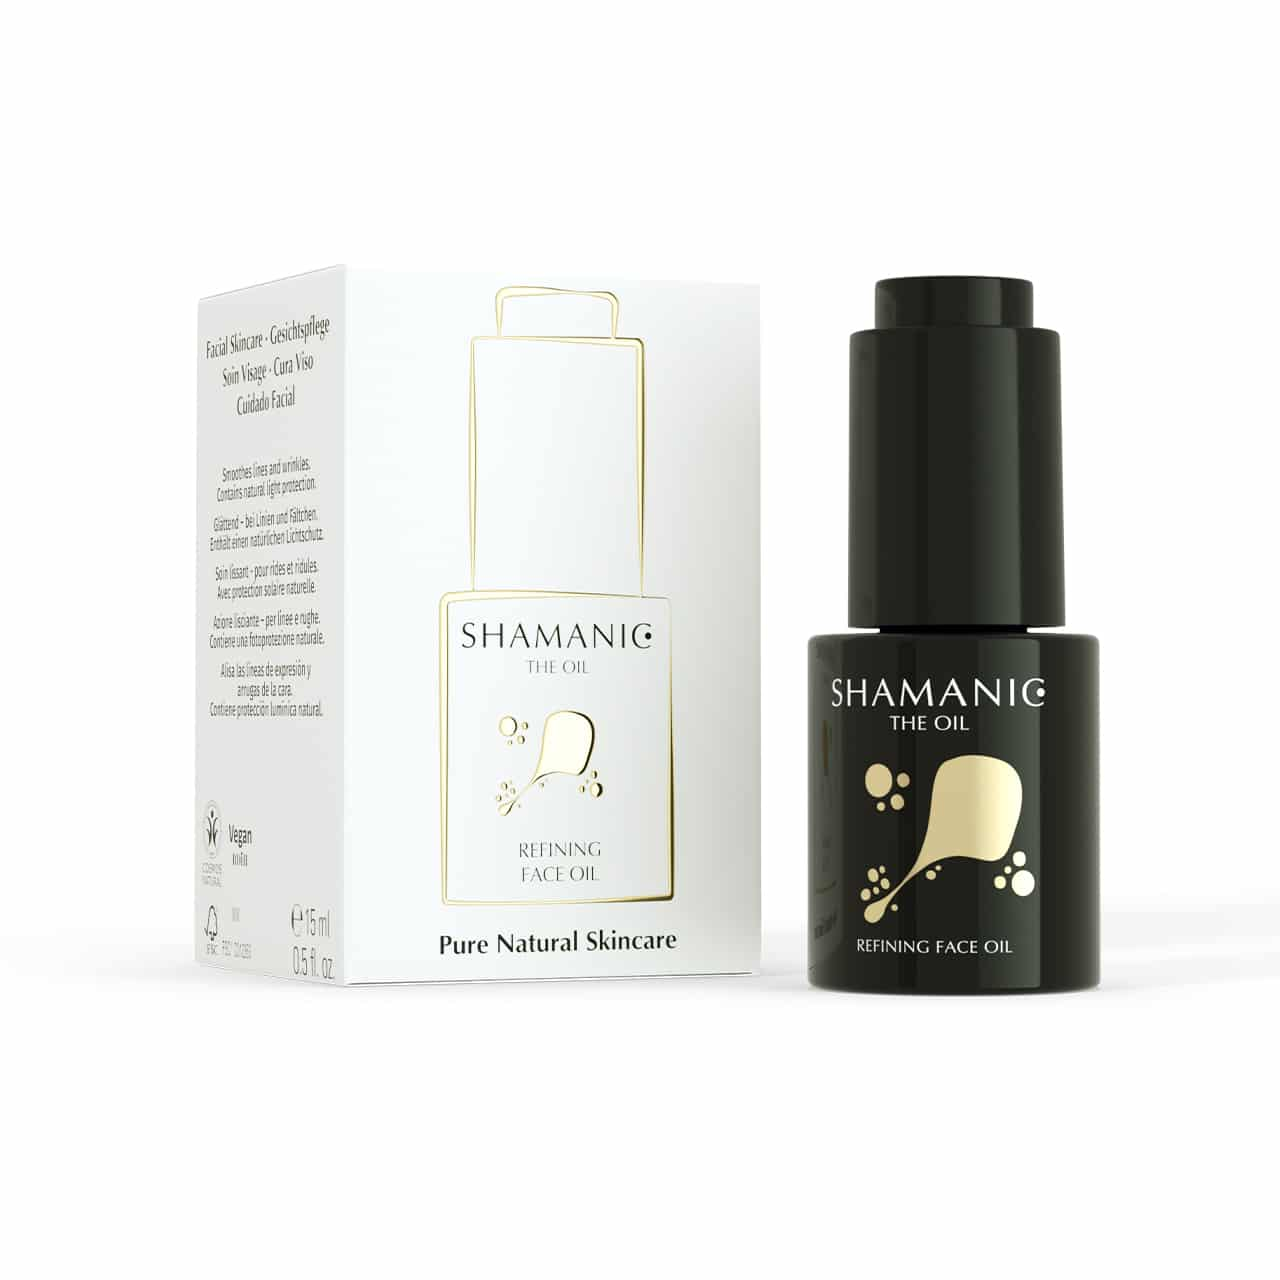 shamanic refining face oil